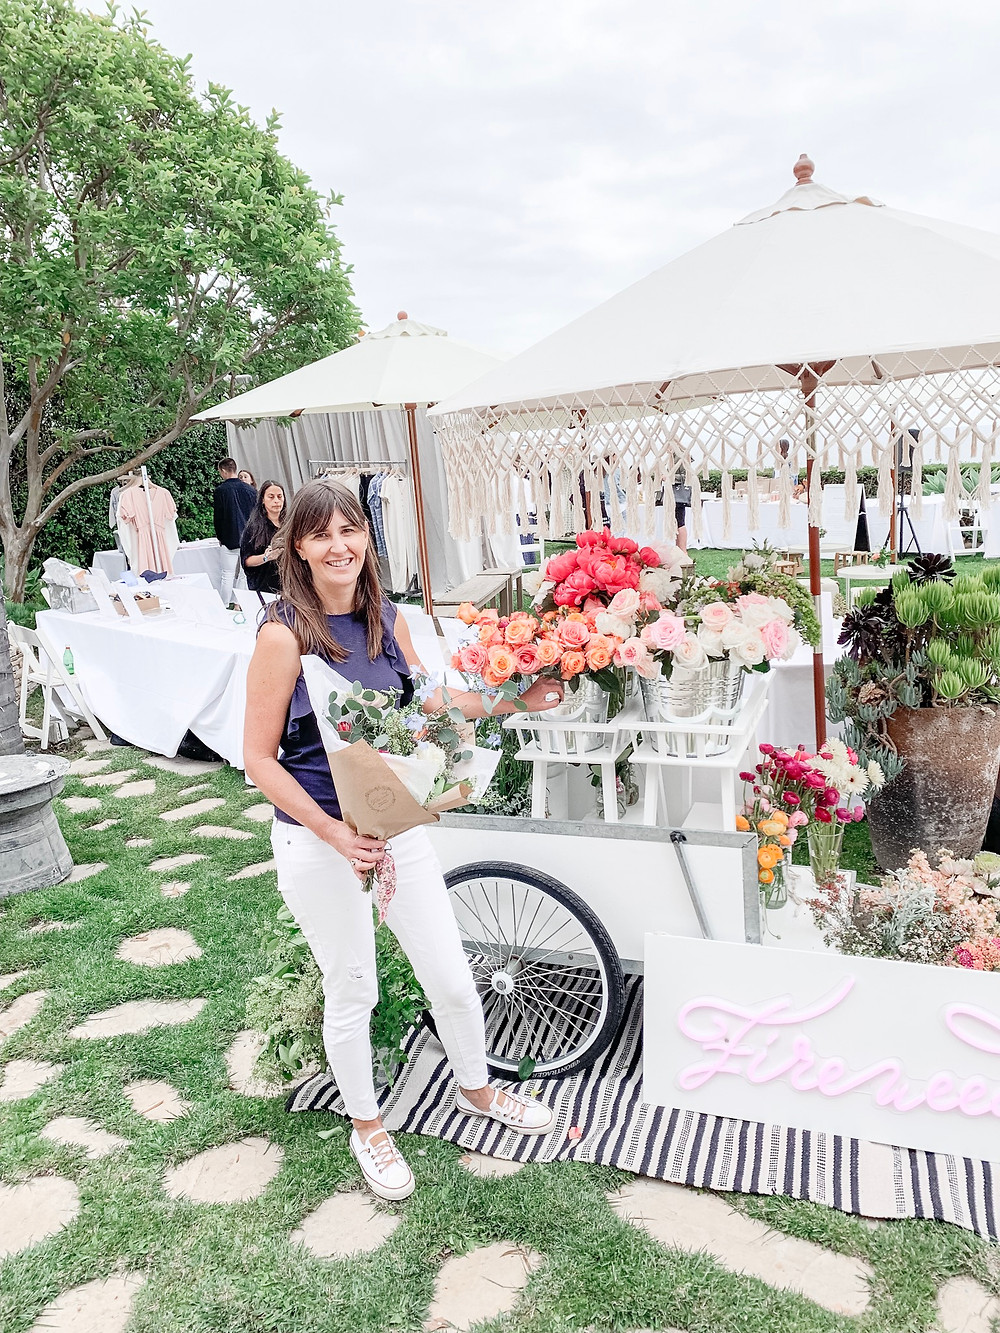 A custom flower cart for weddings, events, corporate events, handmade bouquets, DIY bouquets, fundraisers, business retreats, DIY flower cart, Display flower cart, vinatge flower cart, old fashioned flower cart.